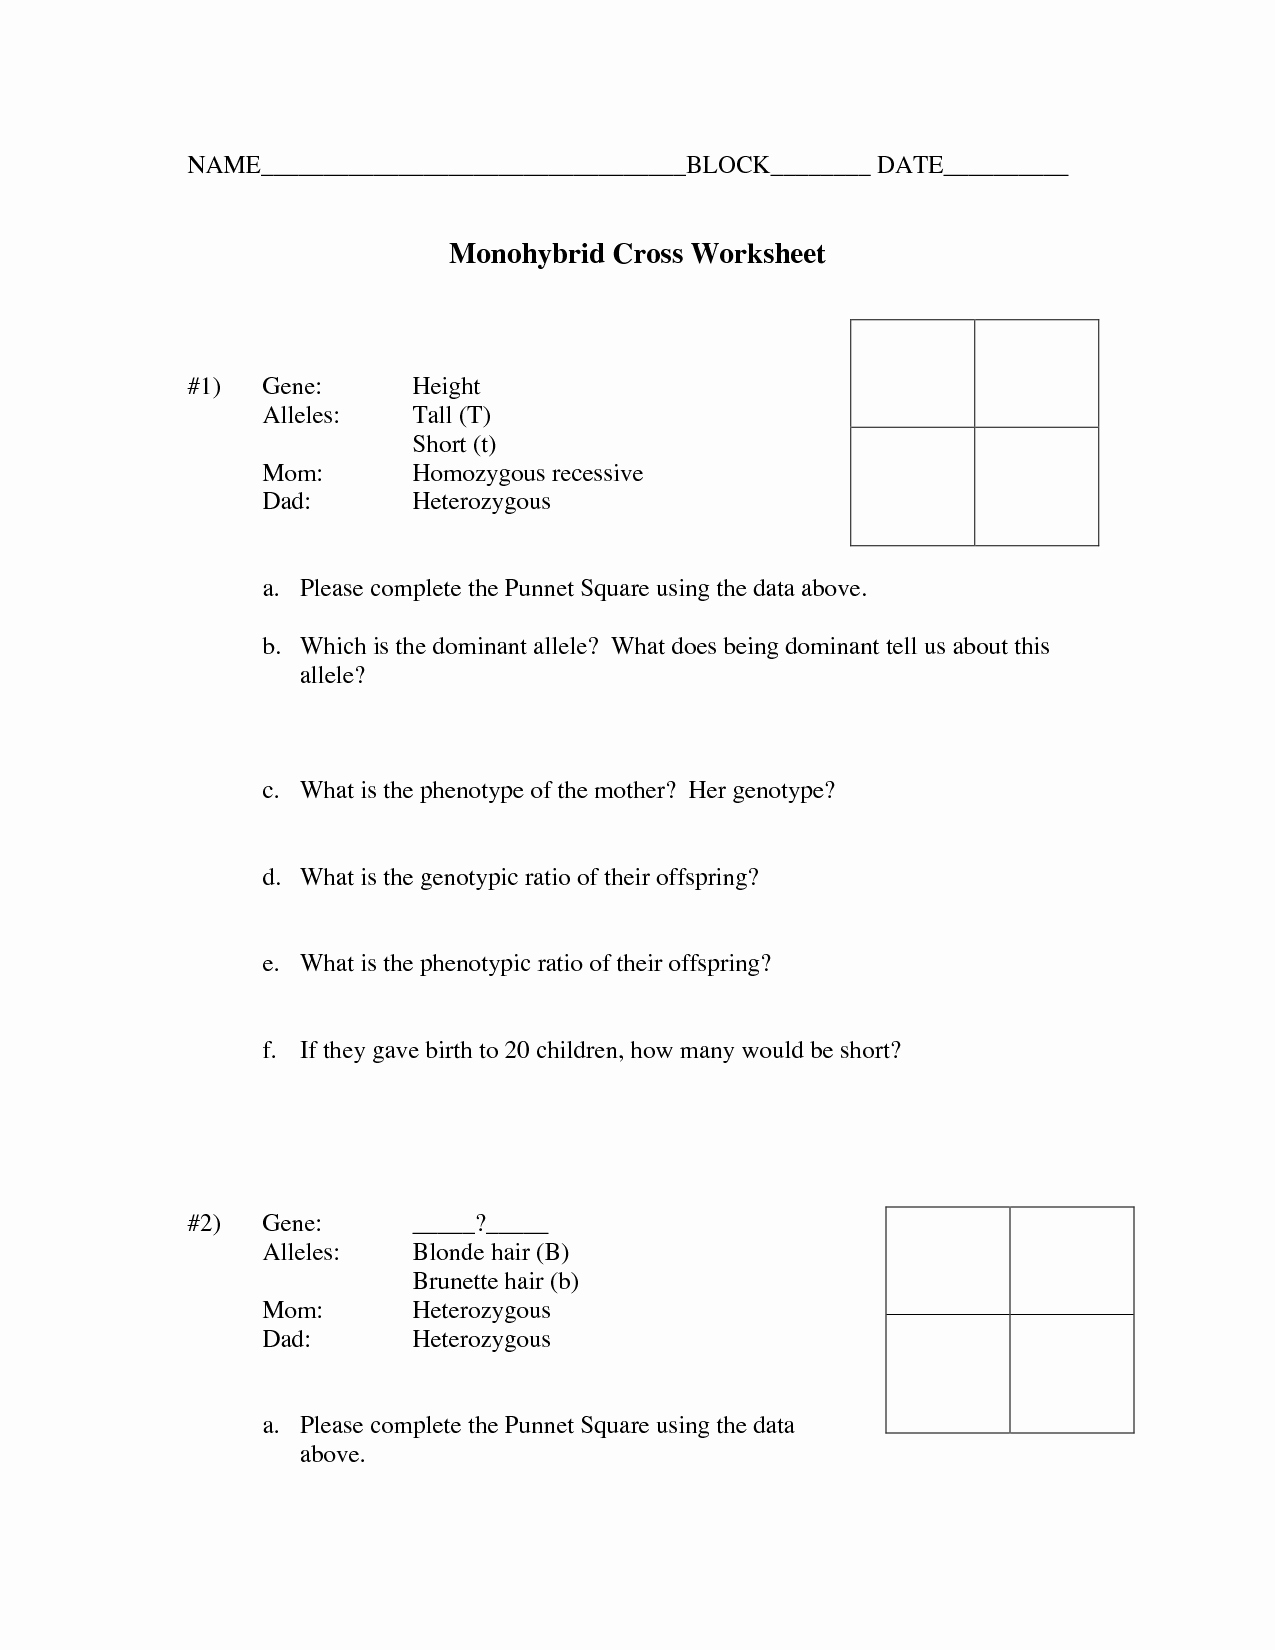 Monohybrid Crosses Worksheet Answers Beautiful 14 Best Of Monohybrid Cross Worksheet Answer Key